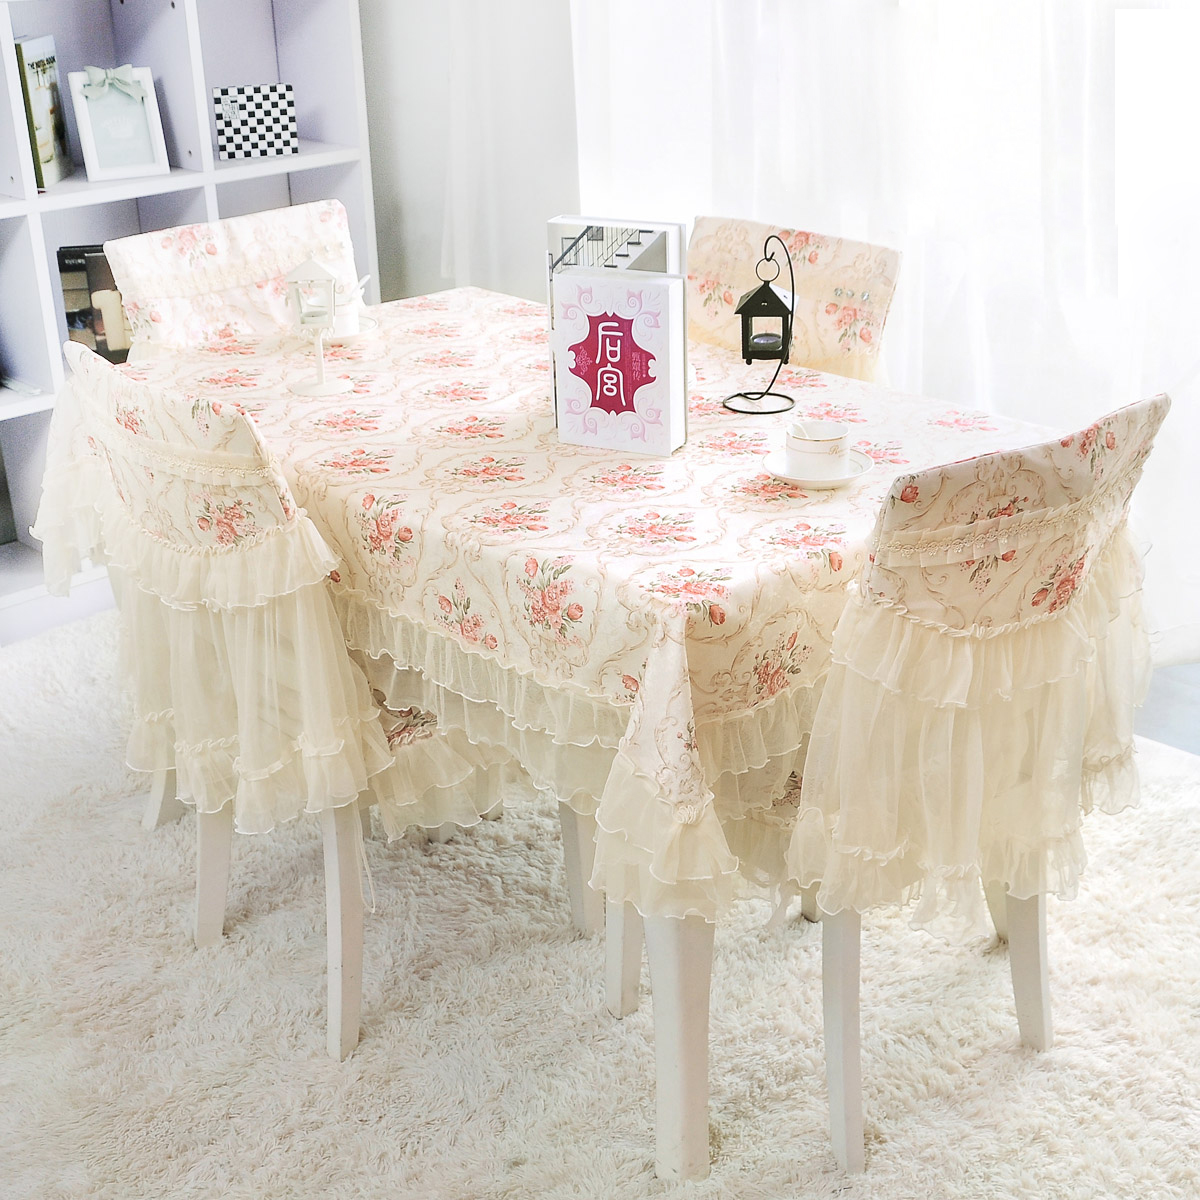 Aliexpresscom Buy Table cloth dining table cloth fabric  : Table cloth dining table cloth fabric dining table chair cover set dining chair cushion chair covers from www.aliexpress.com size 1200 x 1200 jpeg 598kB